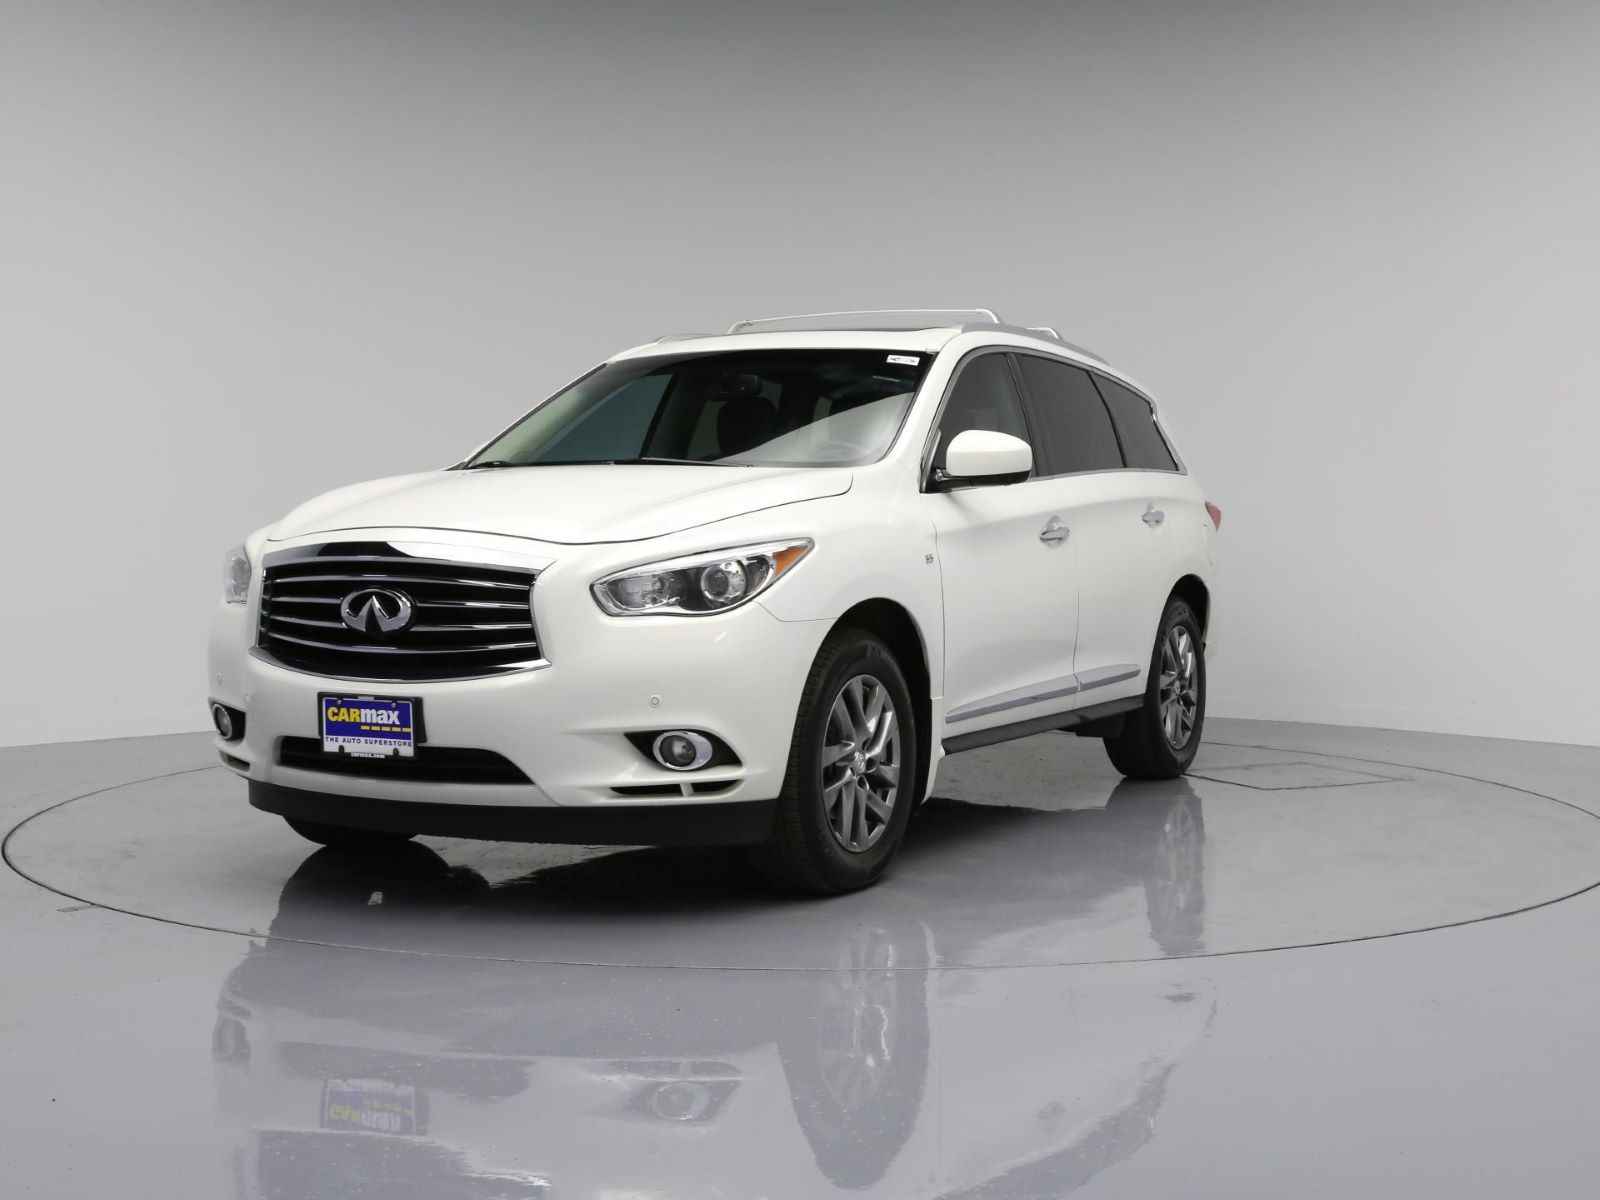 Used 2014 Infiniti QX60 in Nashville, Tennessee CarMax